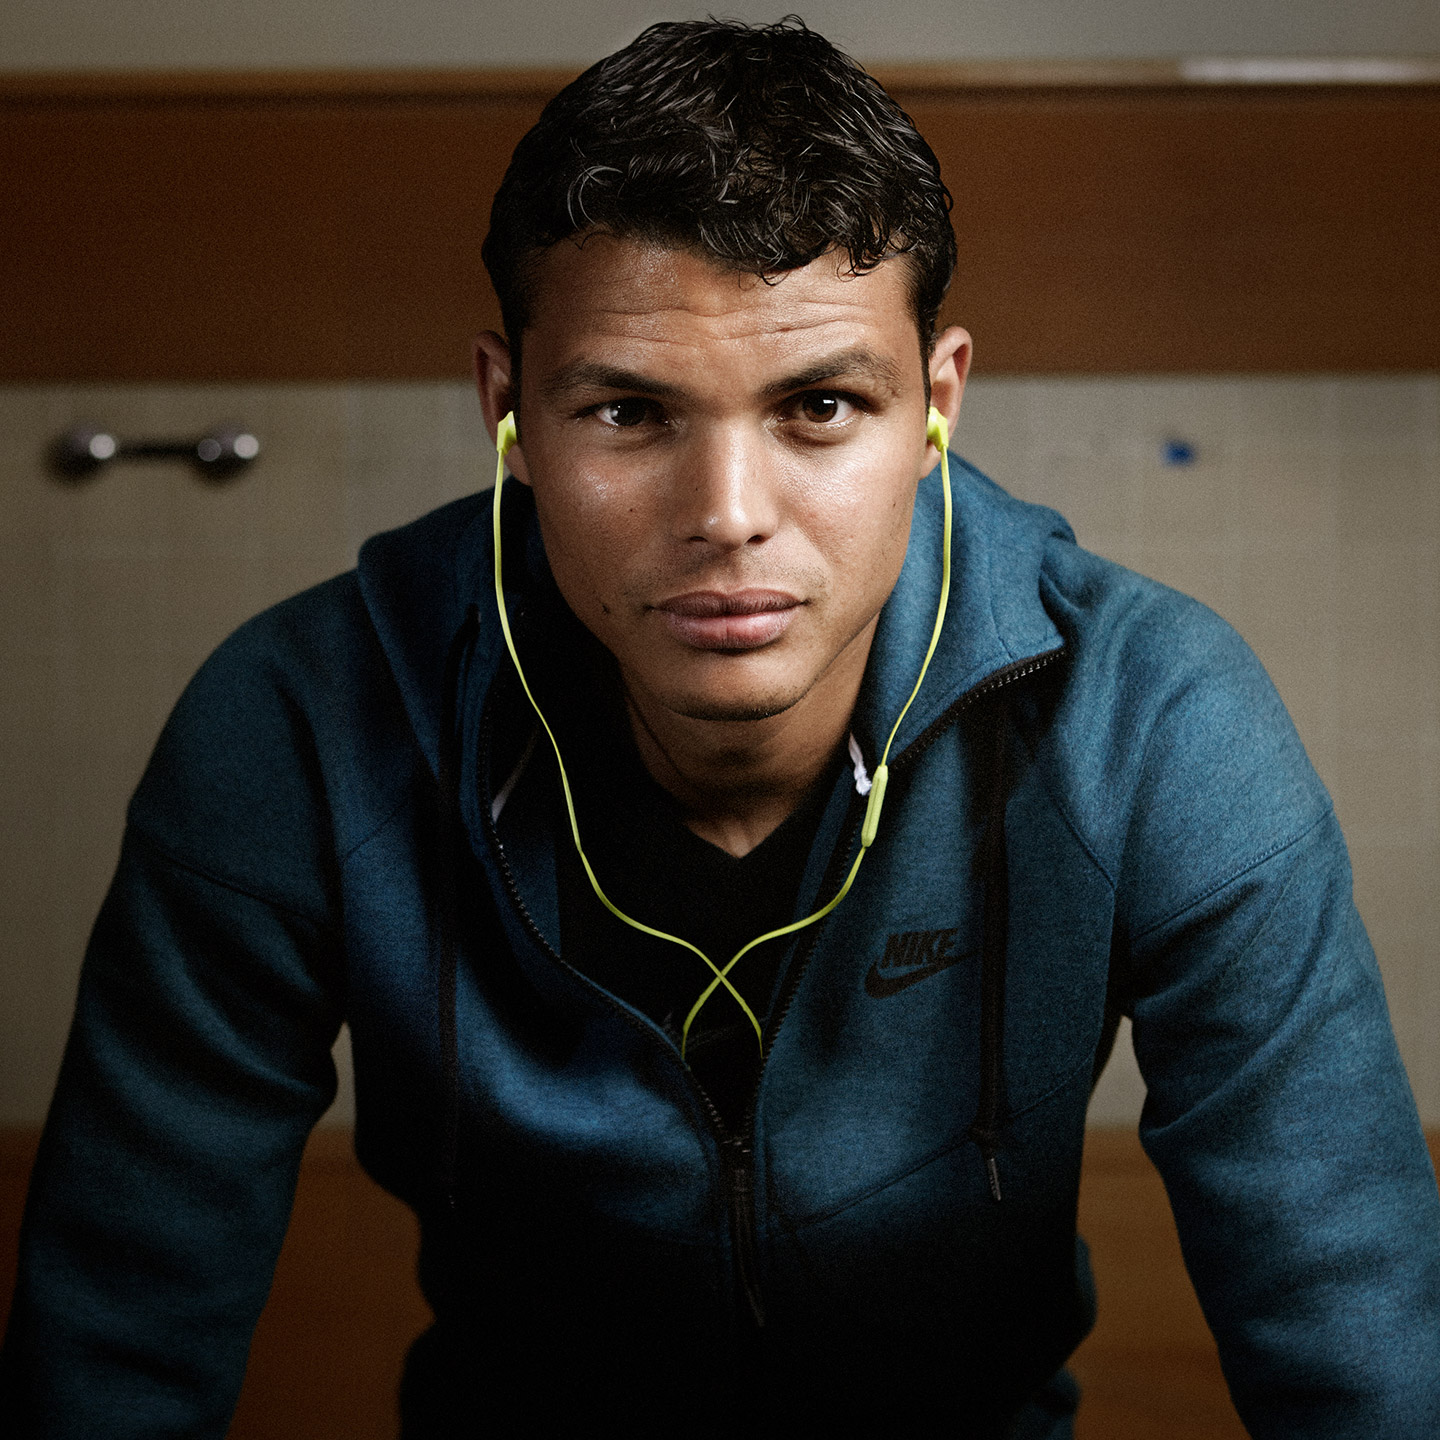 thiago silva football soccer player hd mobile desktop background wide screens